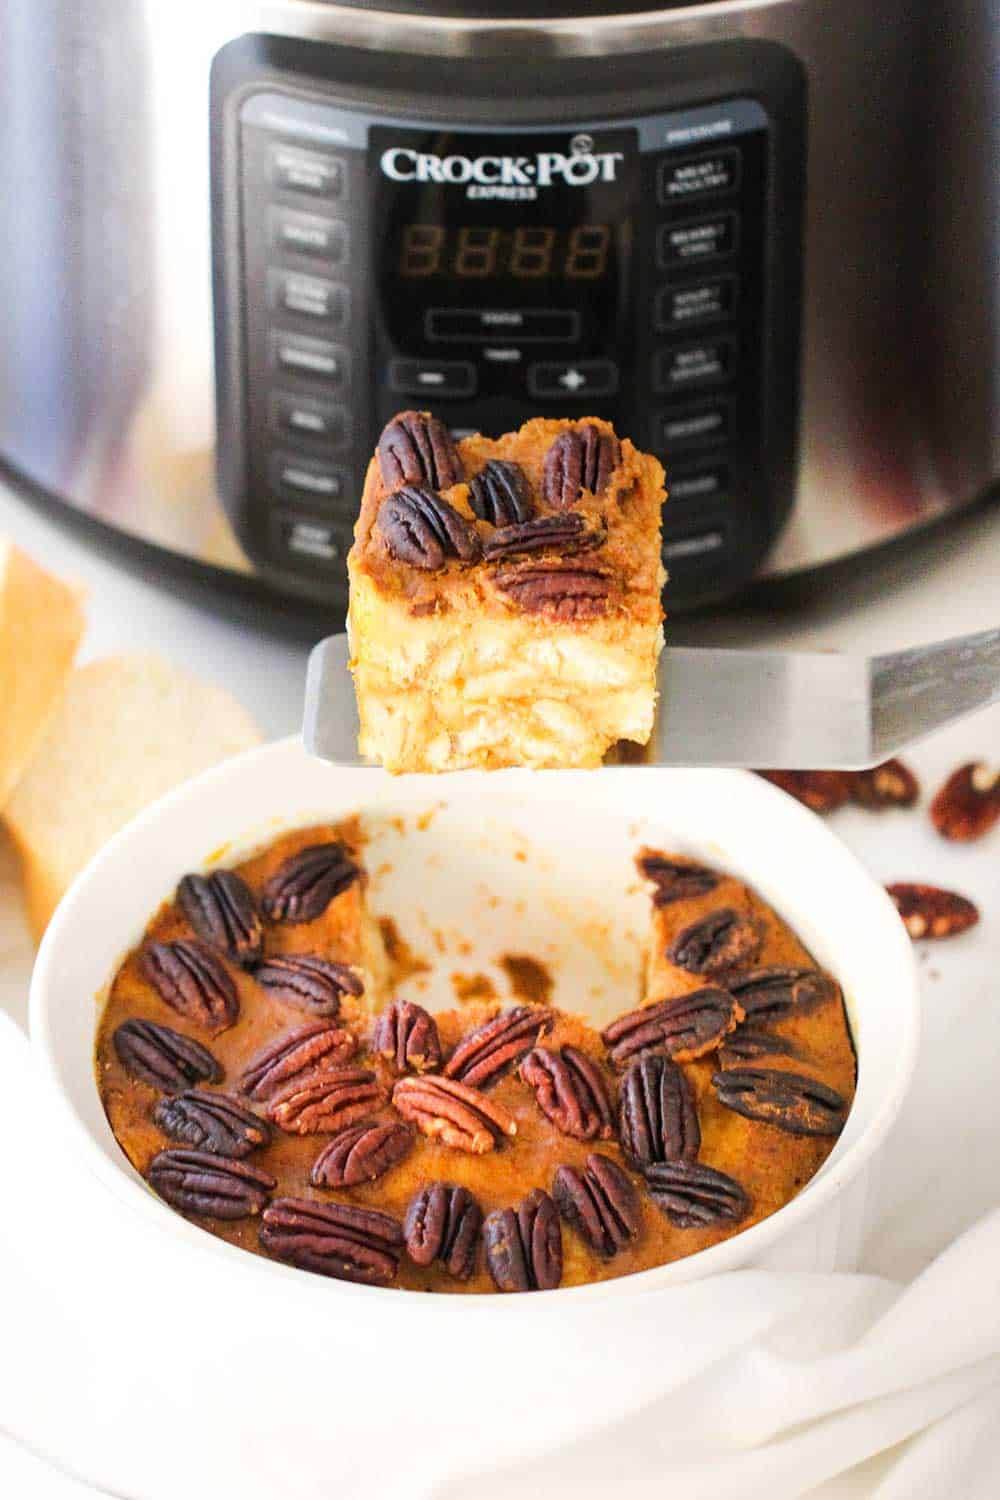 A slice of pumpkin bread pudding being held up on a spatula next to a Crock Pot Pressure Cooker.